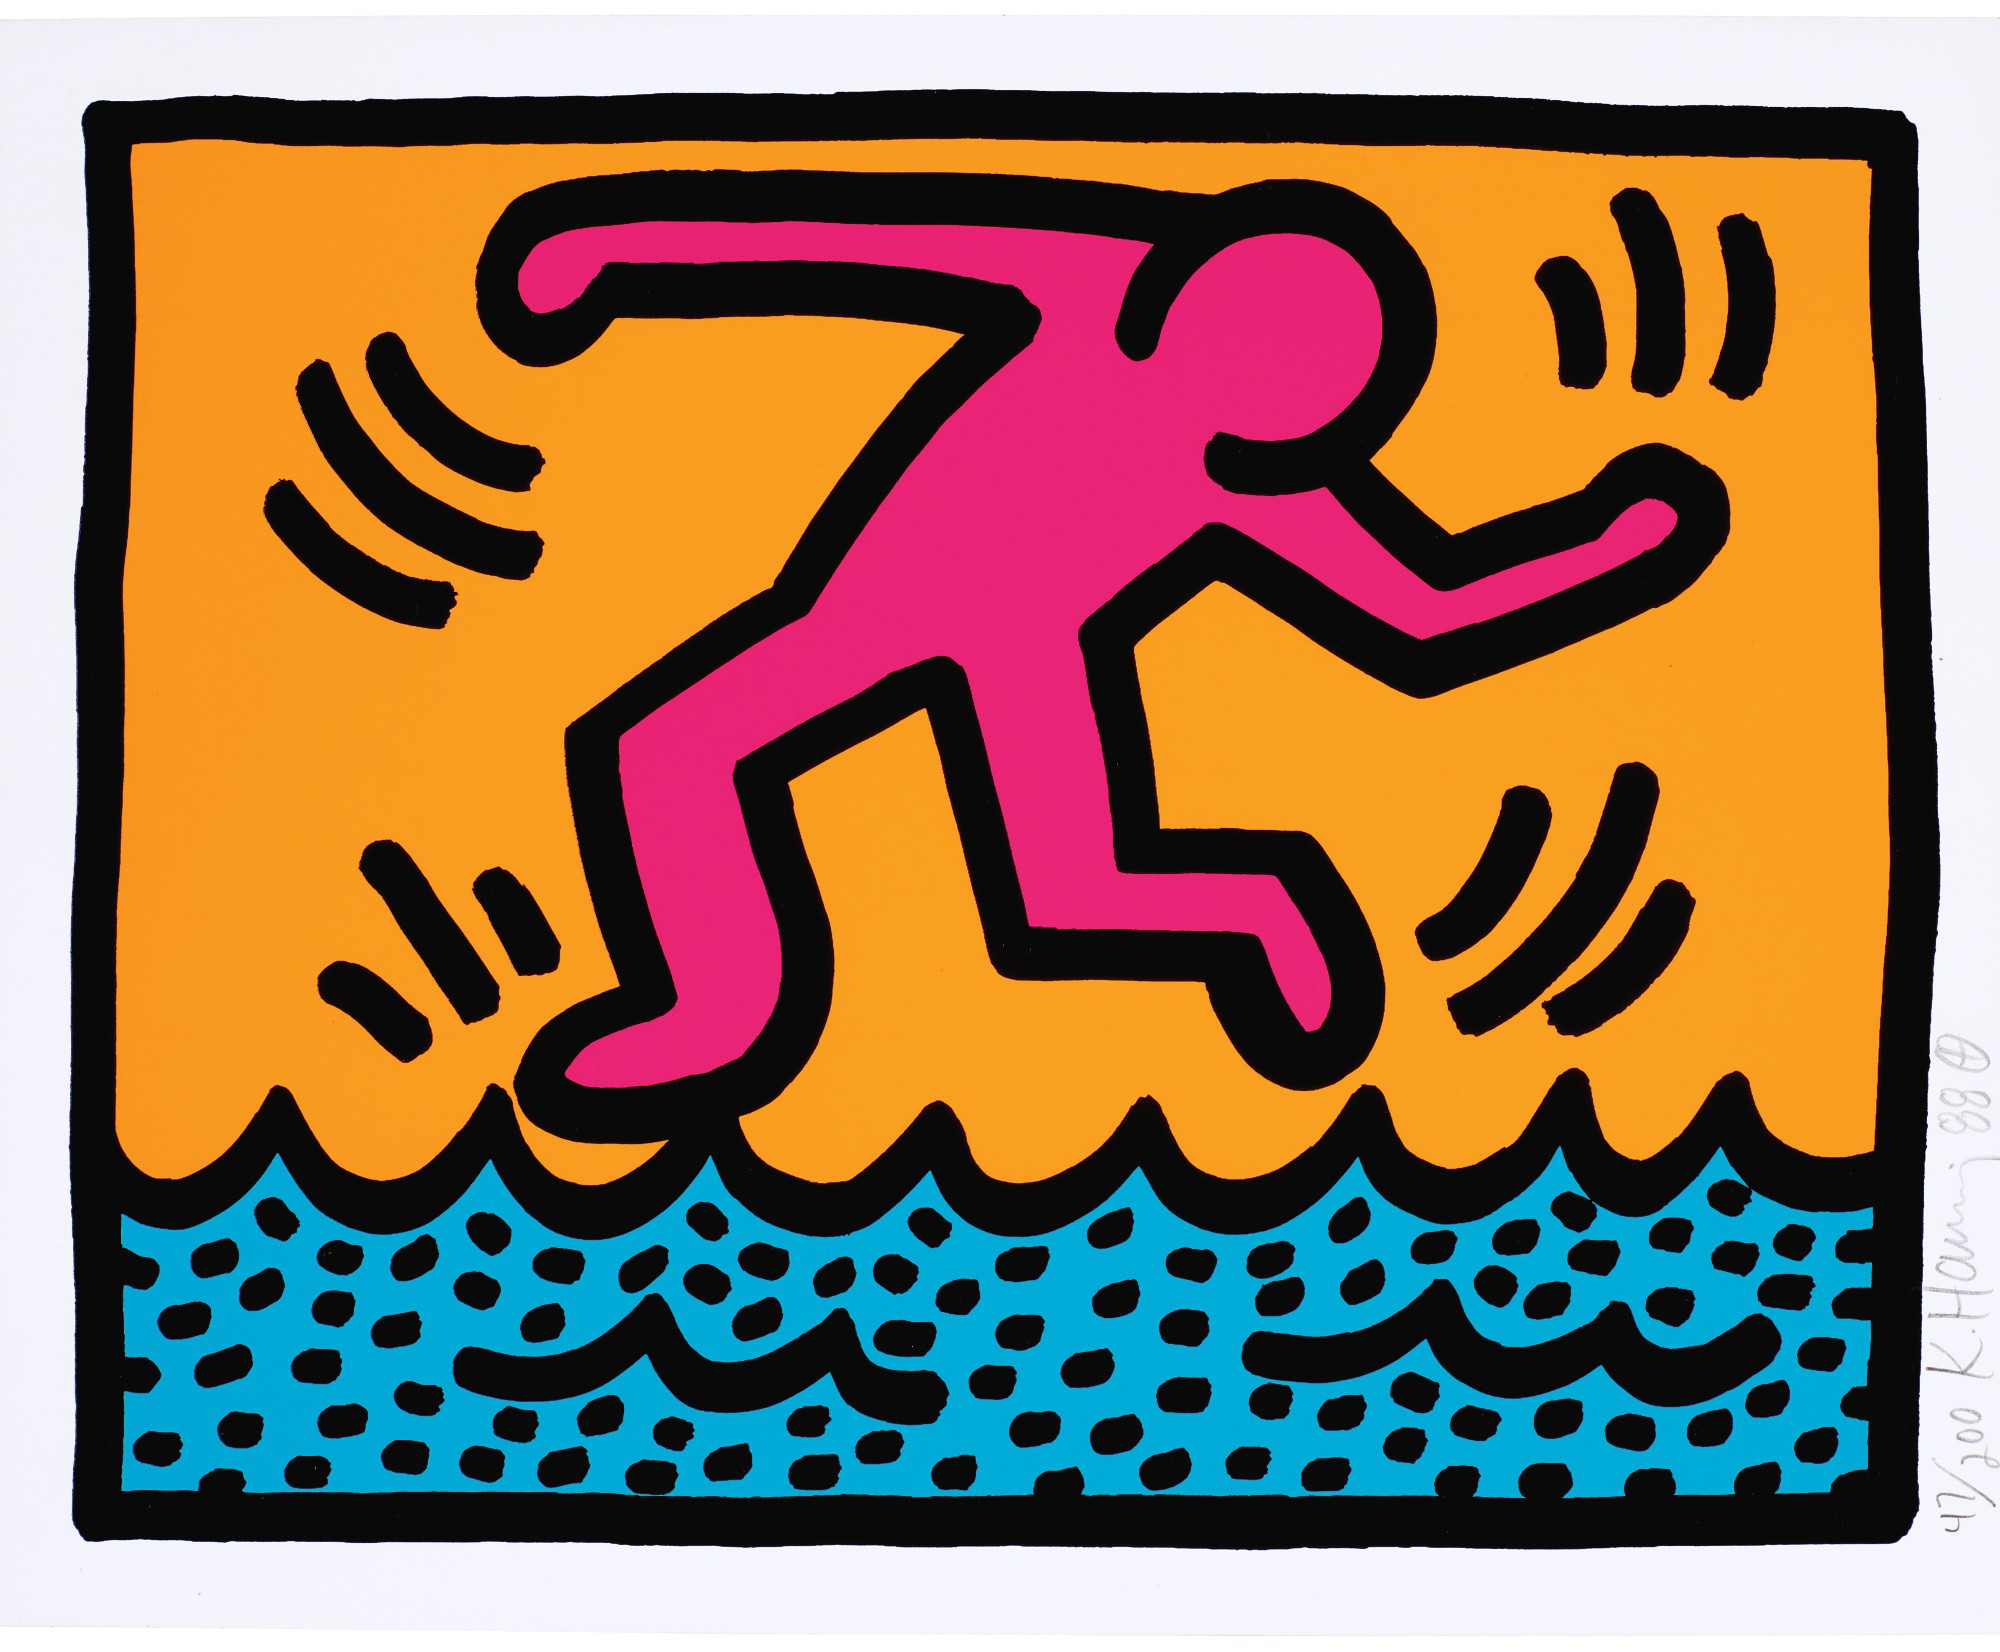 KEITH HARING | UNTITLED (L. P. 97)